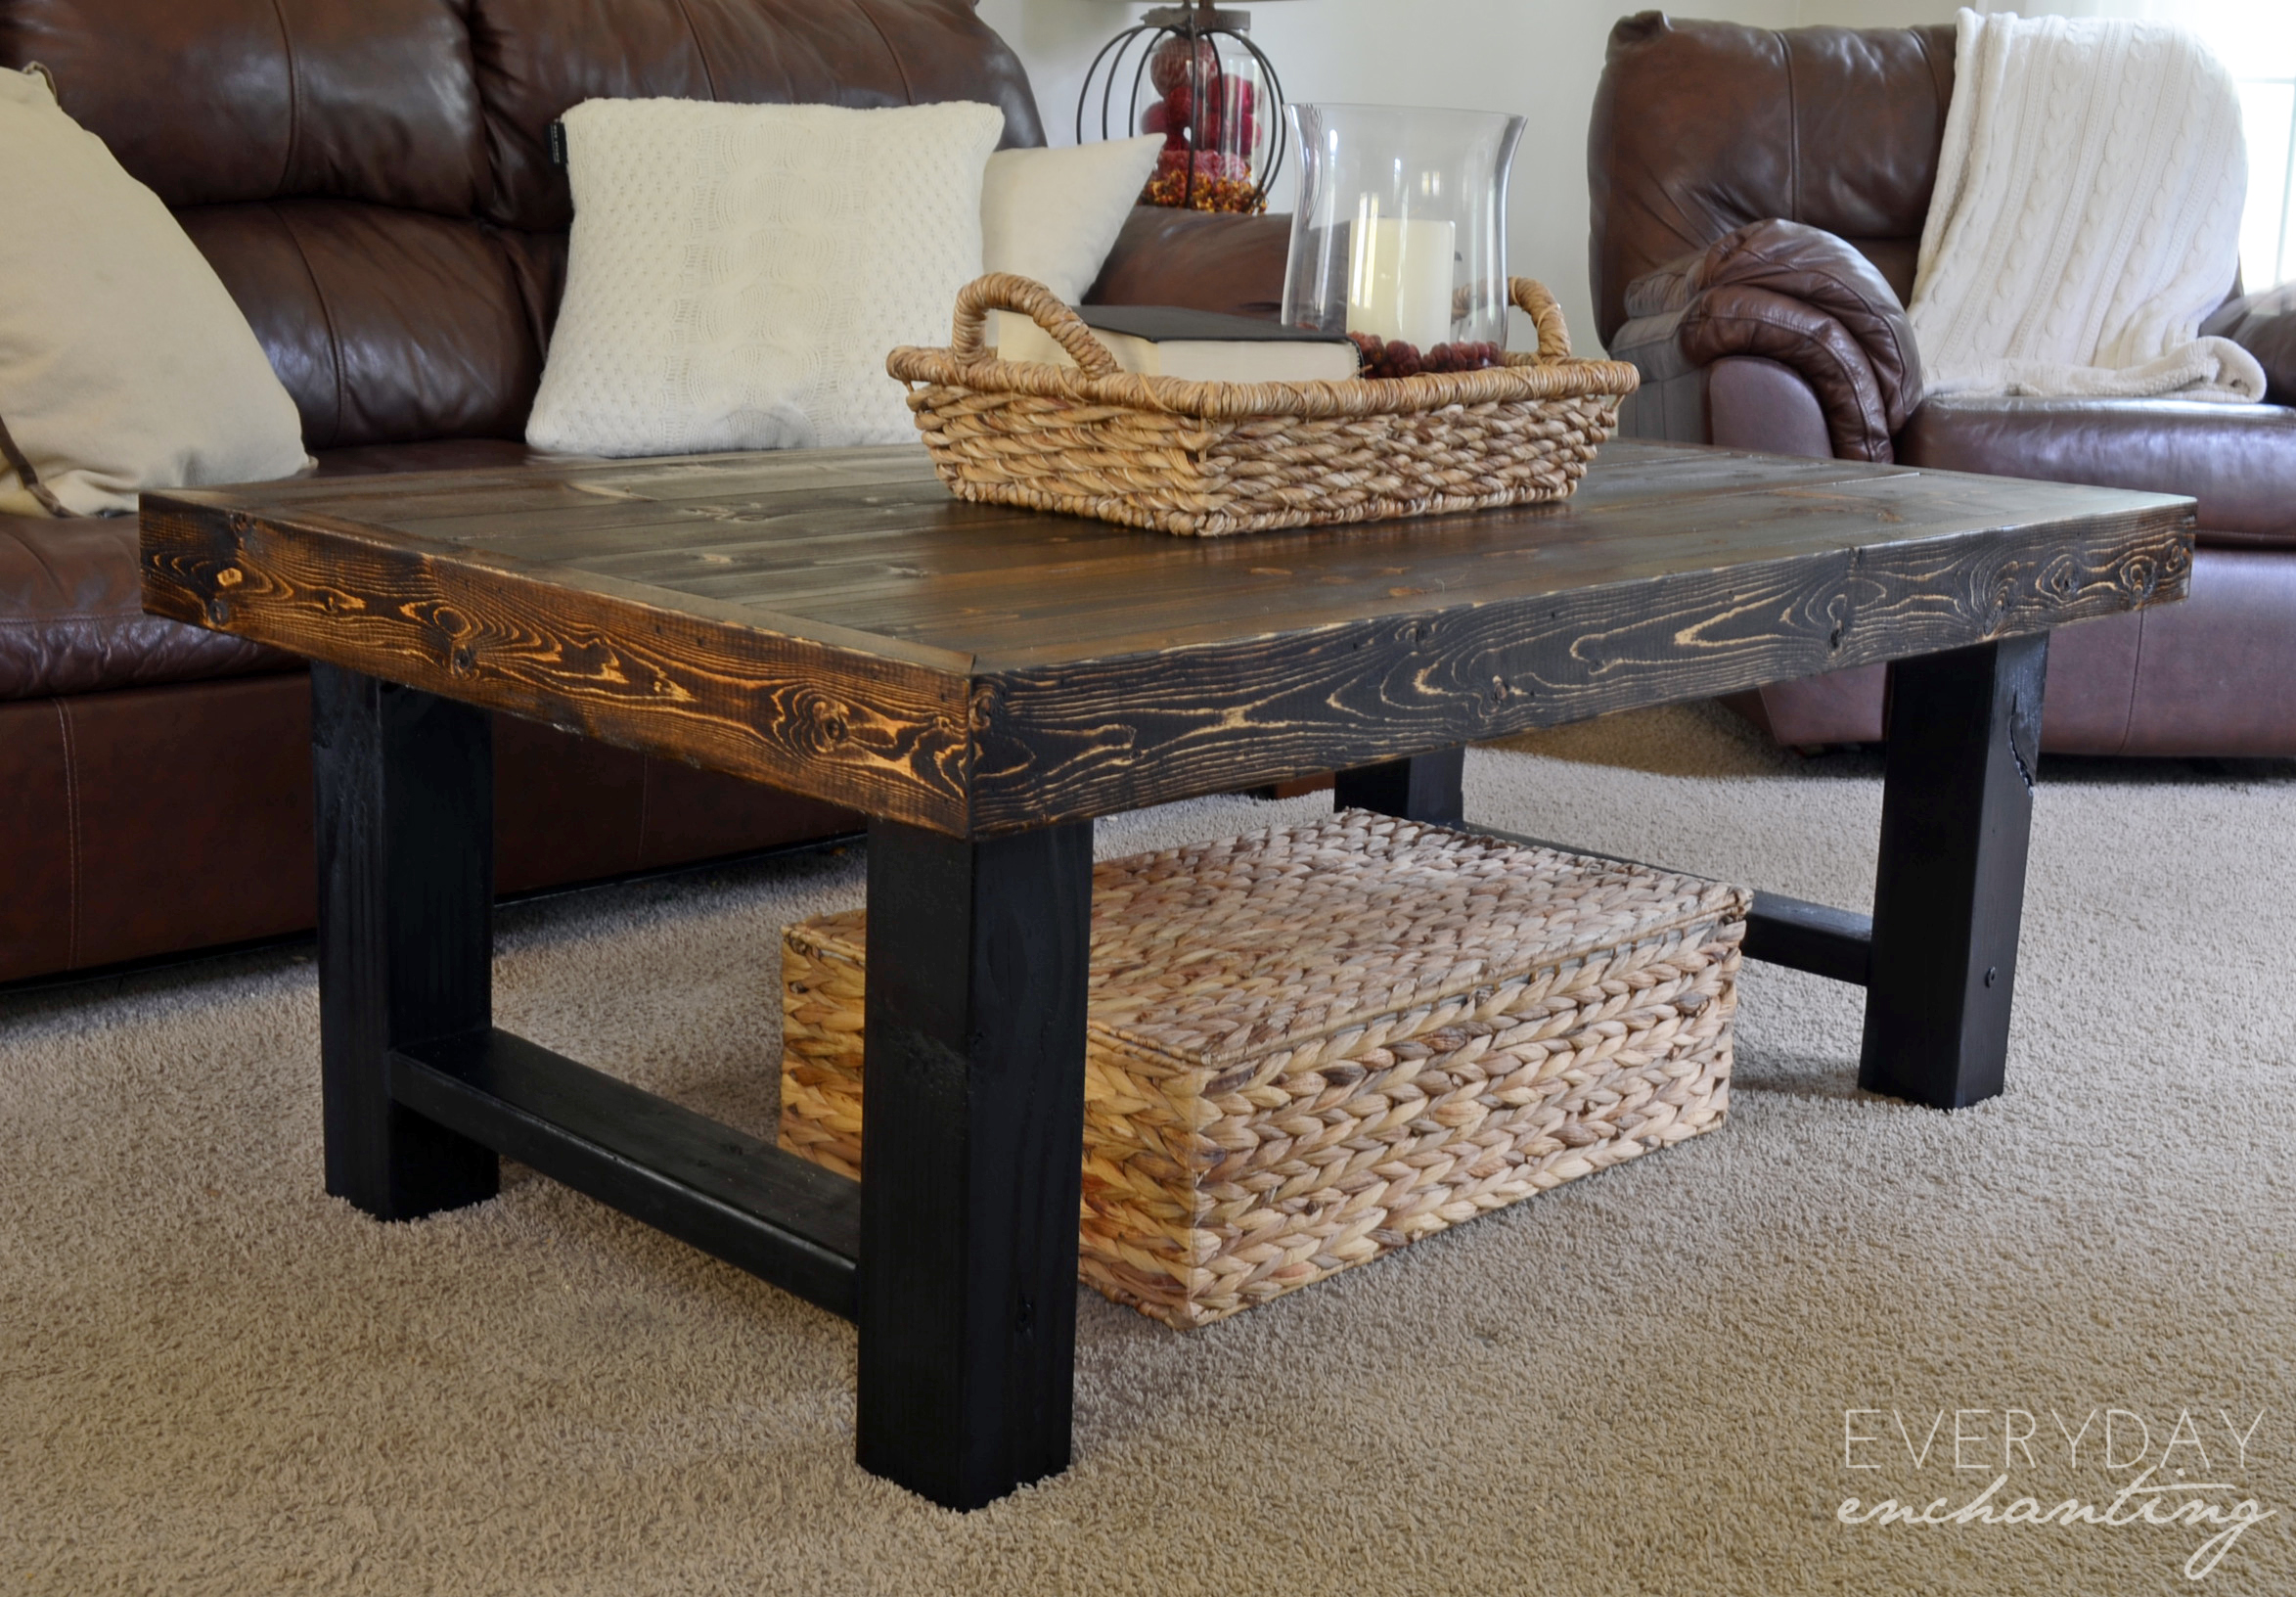 Diy simple coffee table learn how to build a diy simple coffee table by everyday